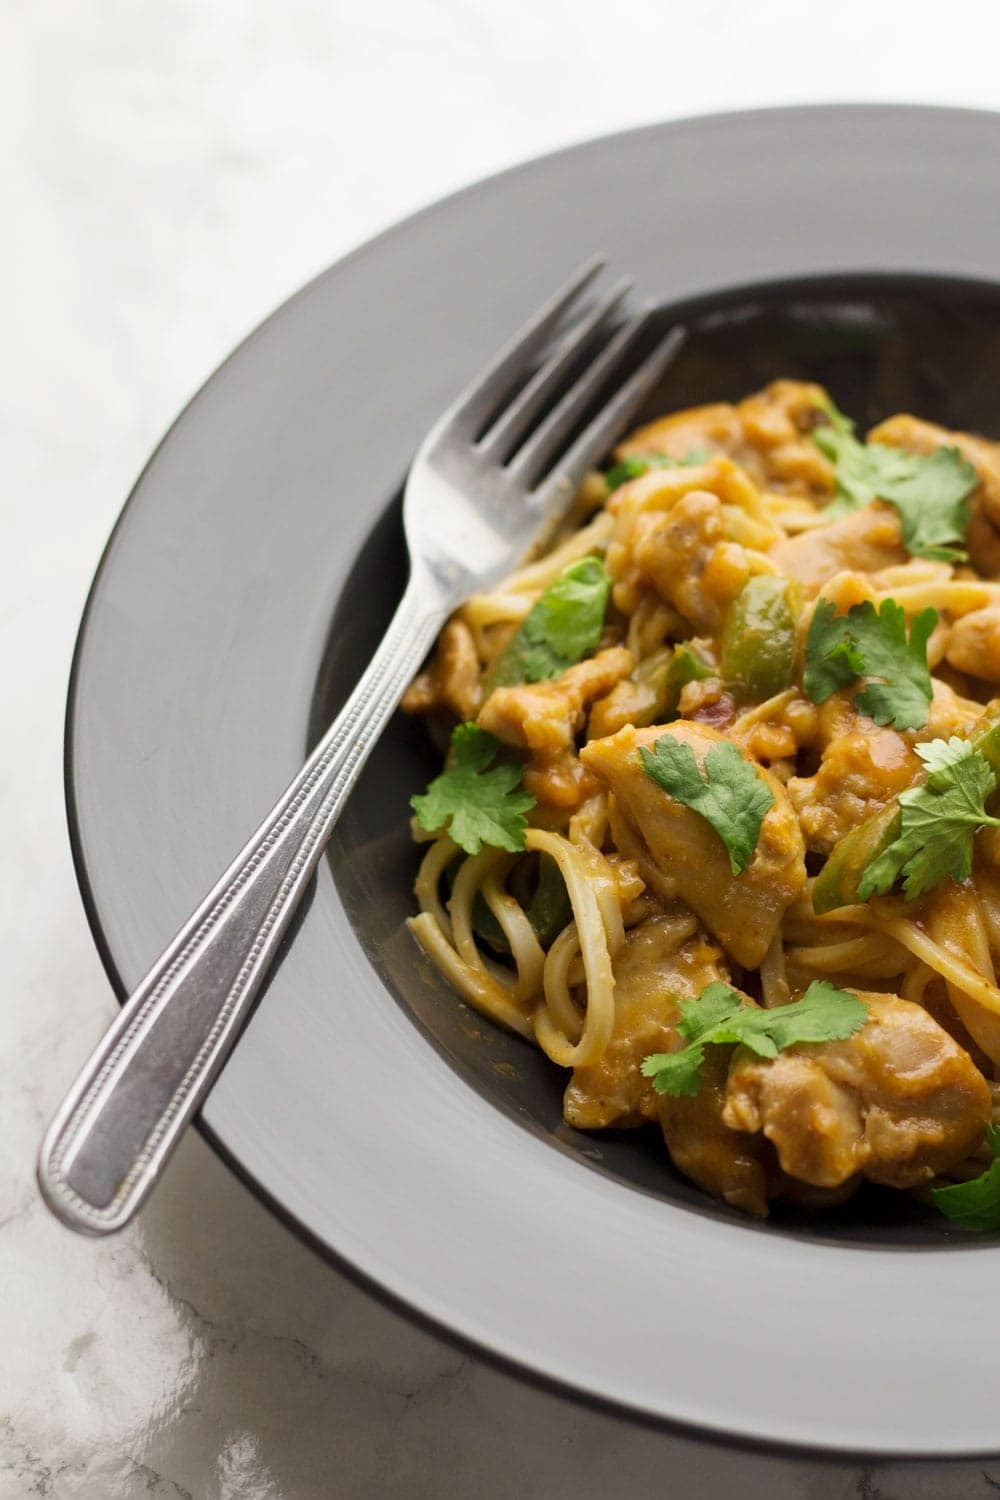 This peanut chicken is a quick weeknight recipe that tastes amazing. Serve over rice or noodles for an easy family dinner.